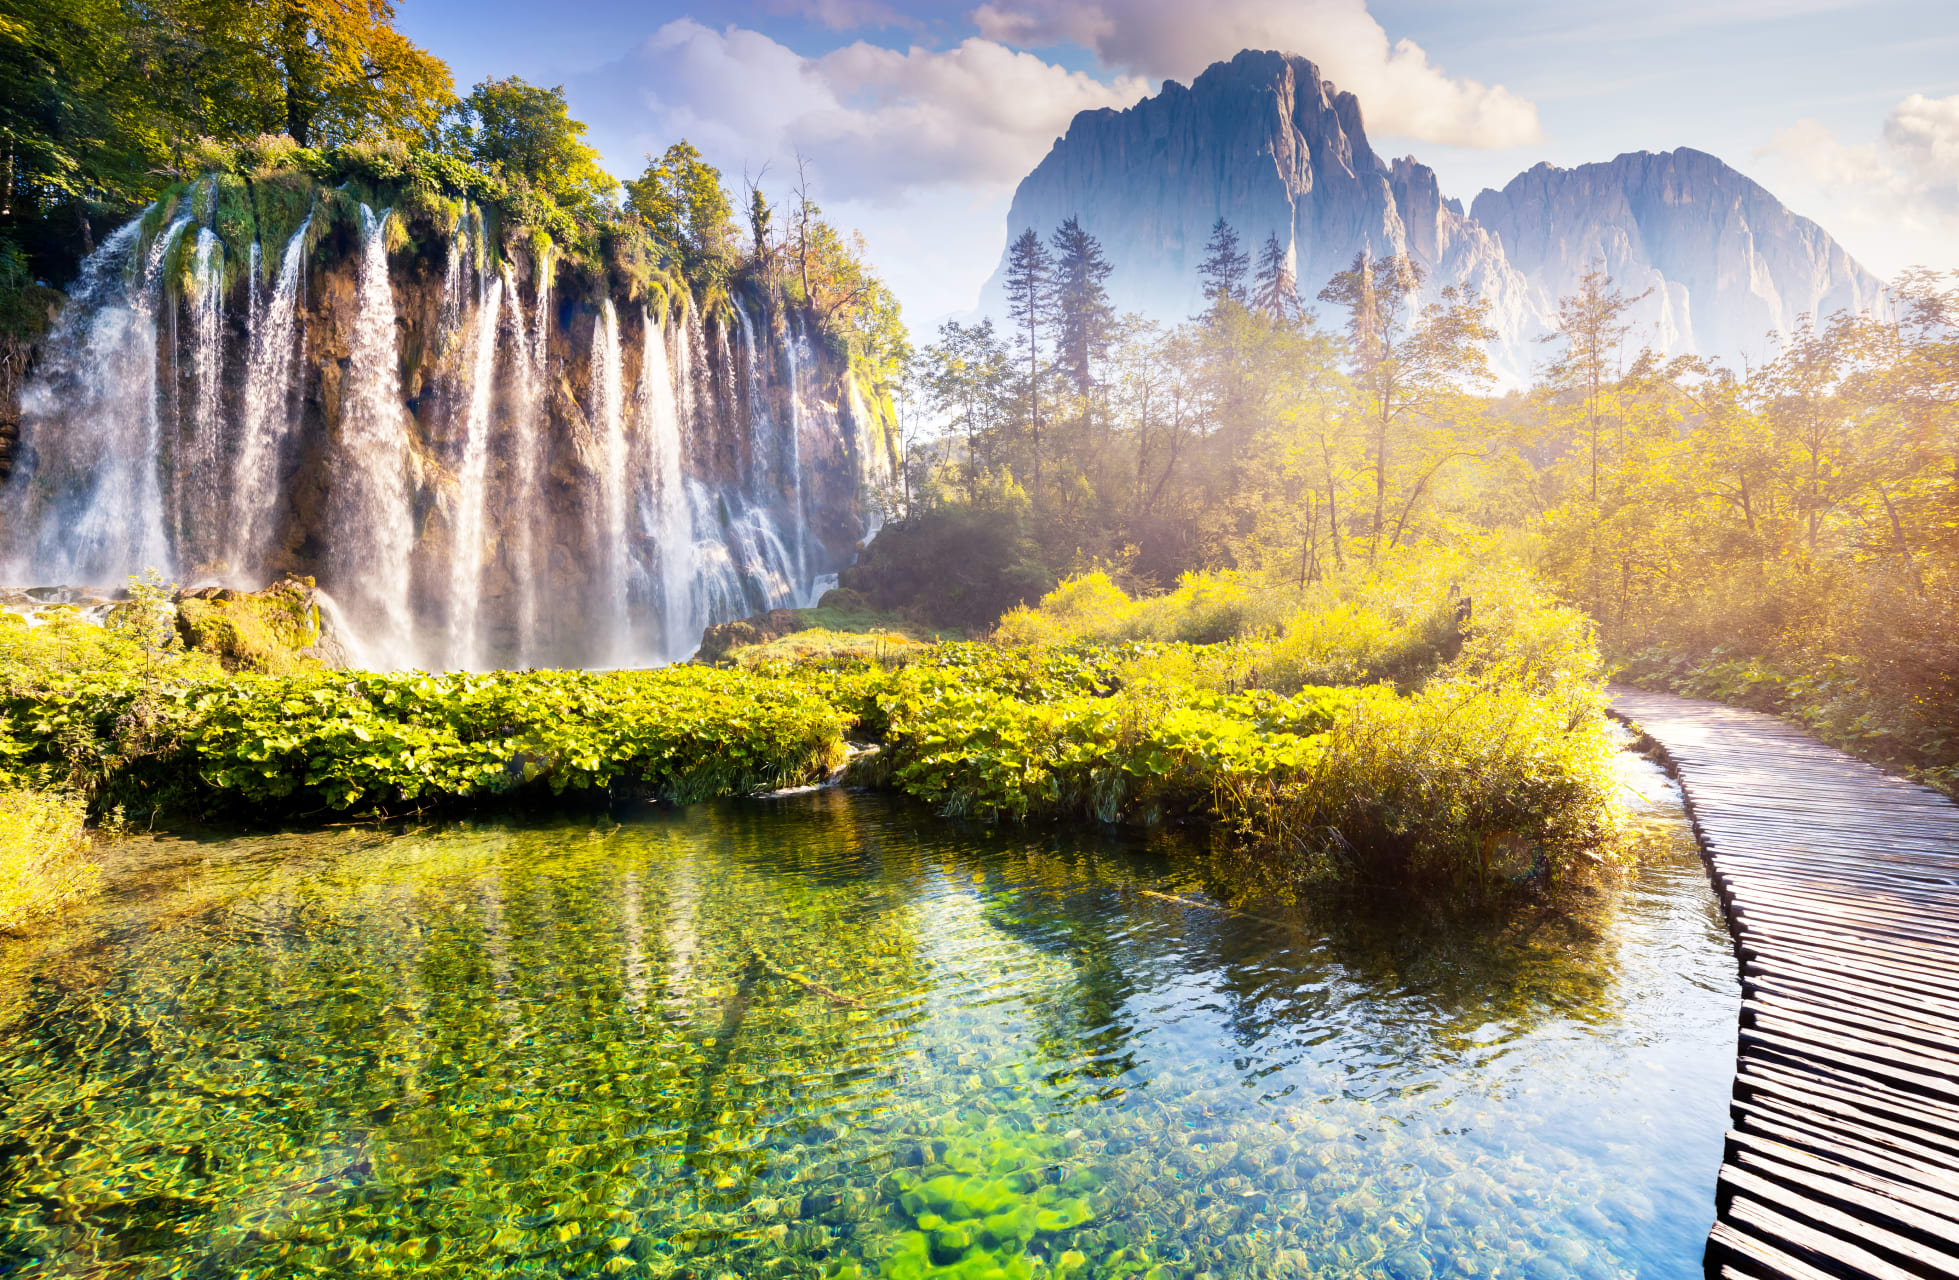 Plitvice Lakes National Park cover image